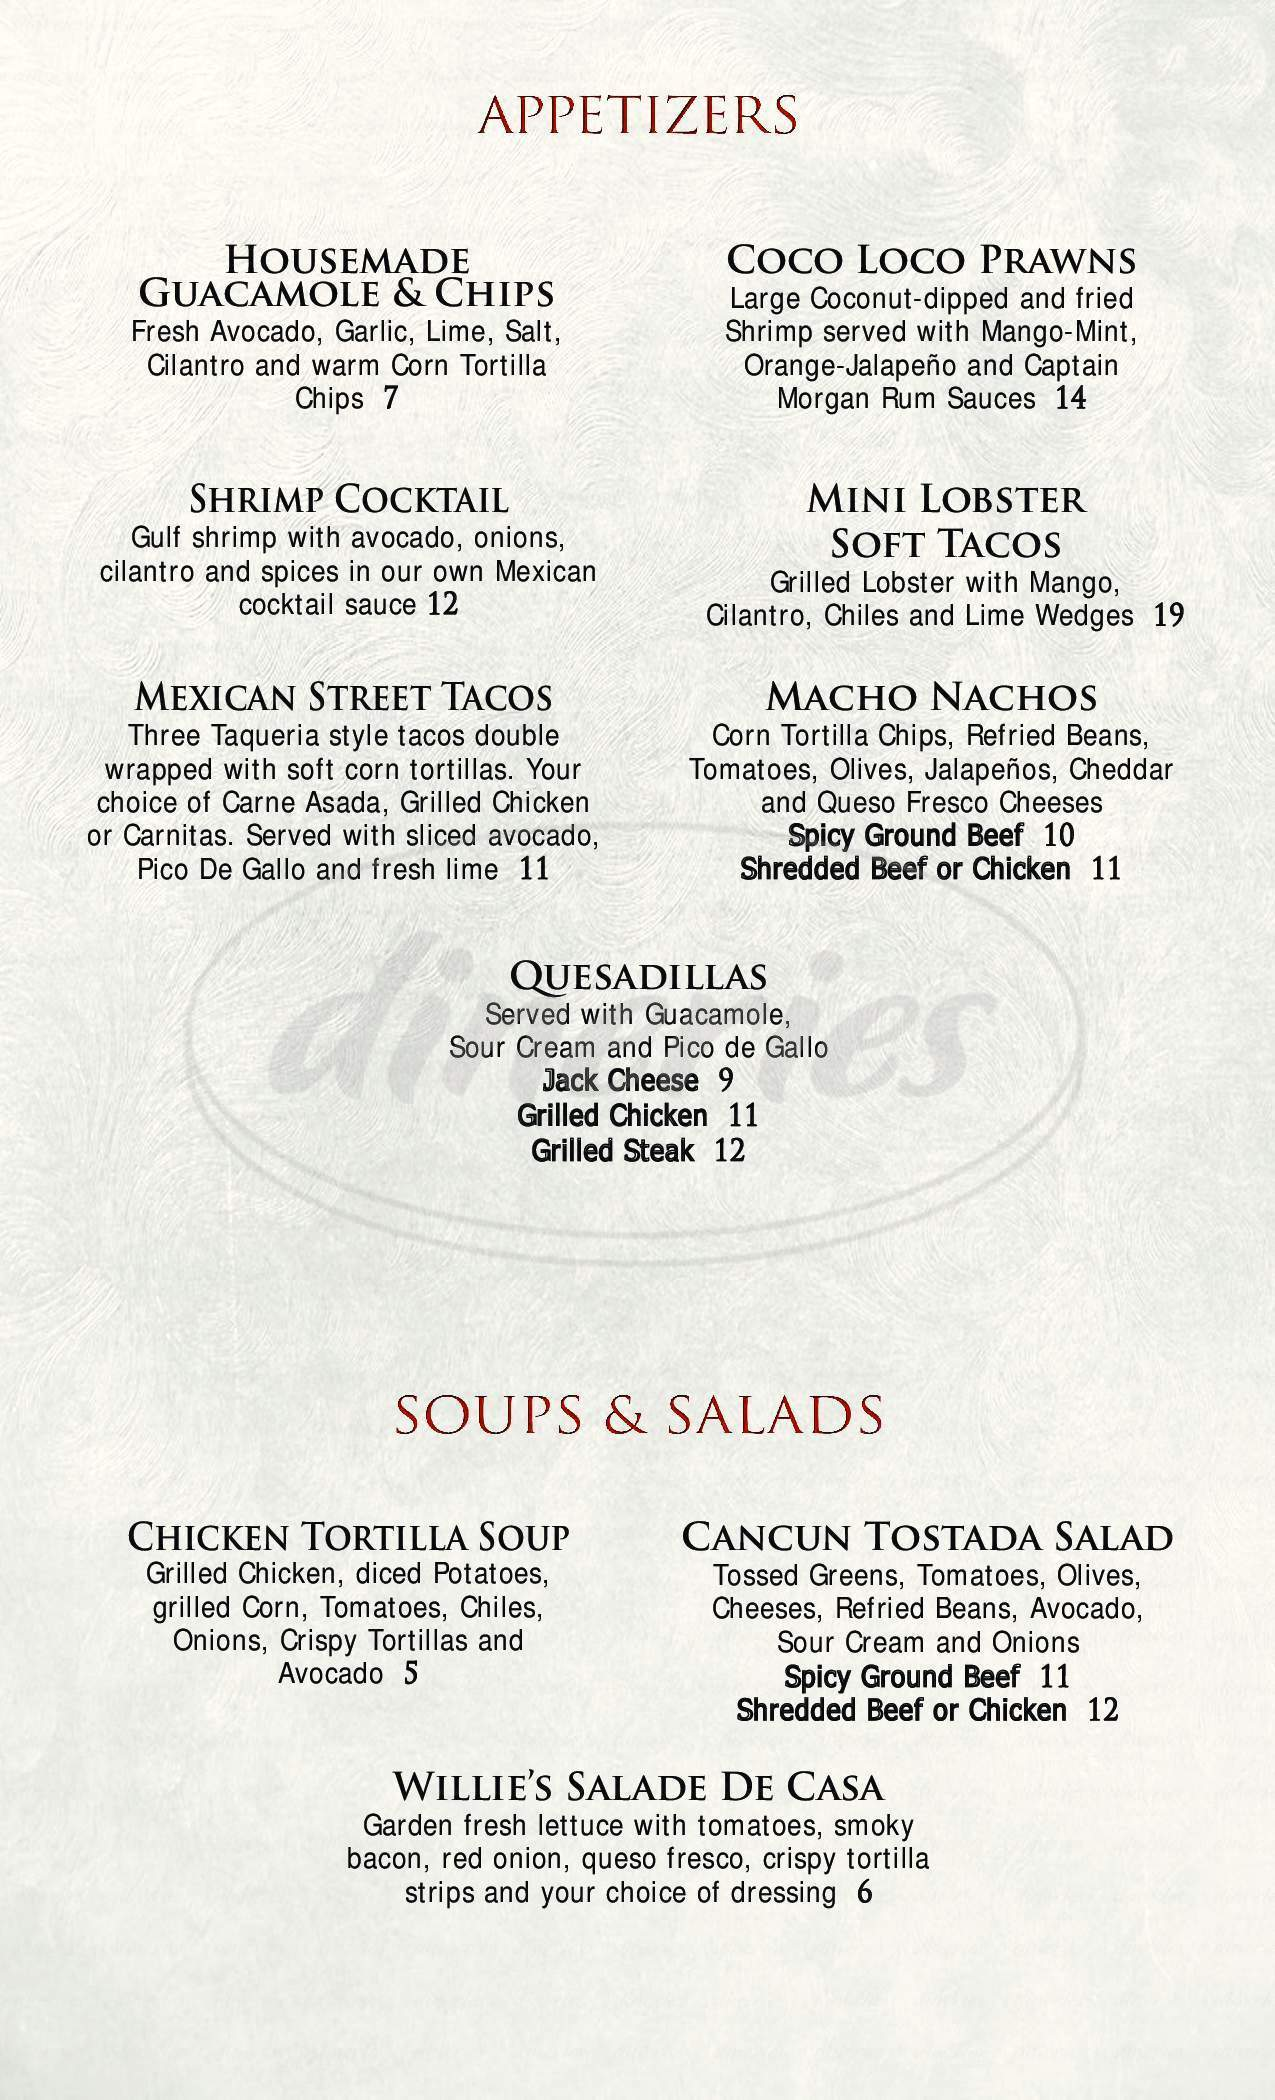 menu for Pancho & Willie's Cantina